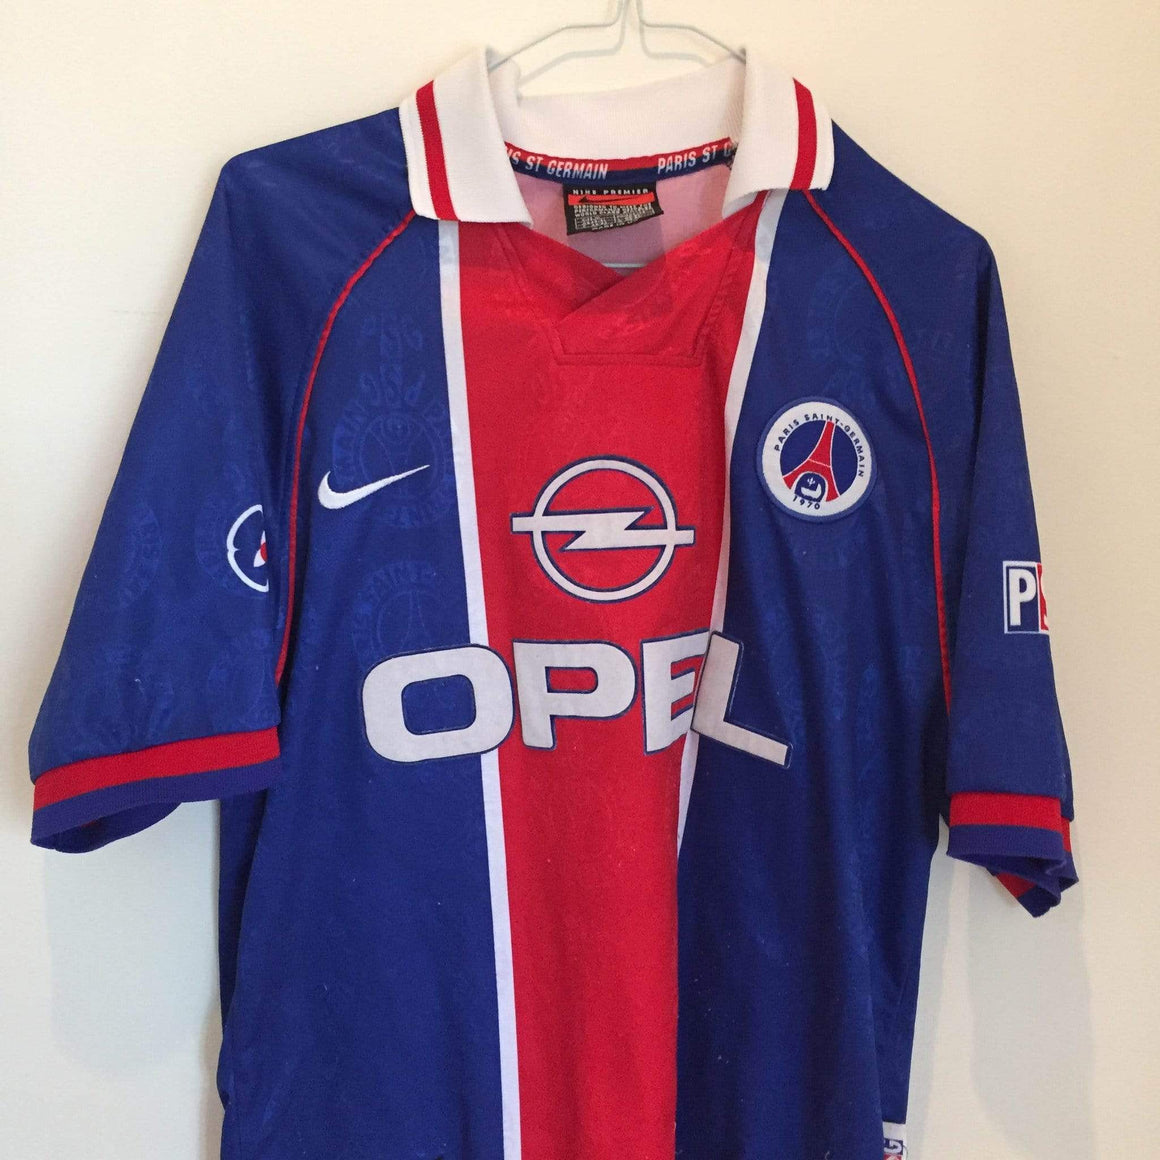 1995-96 PSG home football shirt M - Football Shirt Collective